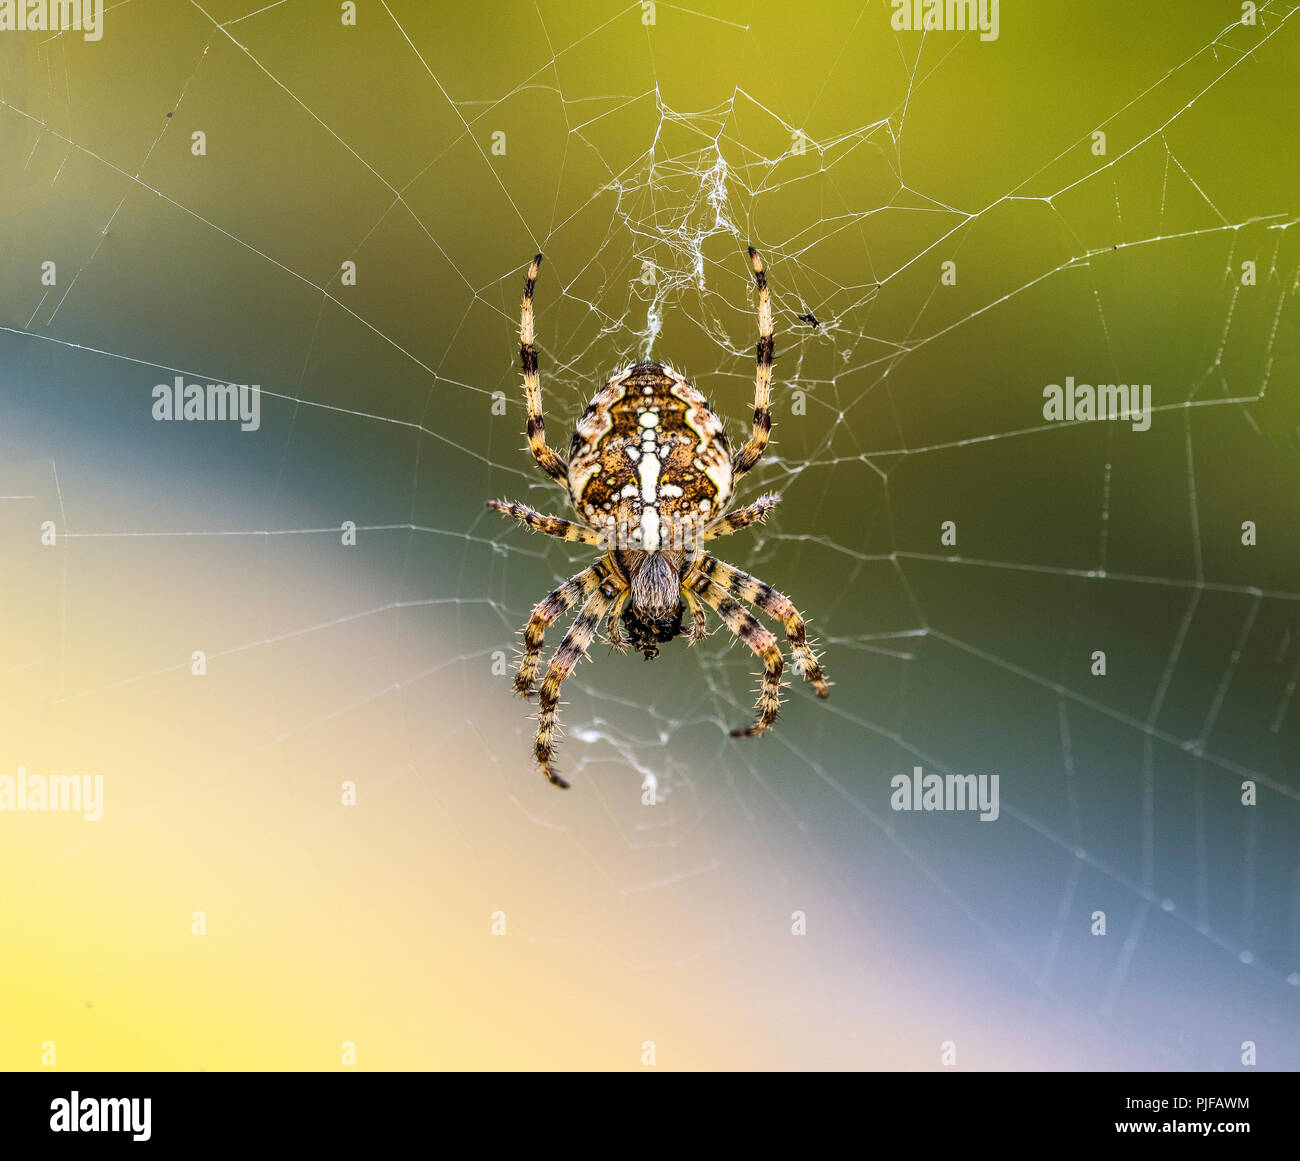 Araneus Diadematus is the Scientific name for this British Cross Orb-Weaver Spider. Situated in centre of its web with every leg monitoring its web. - Stock Image